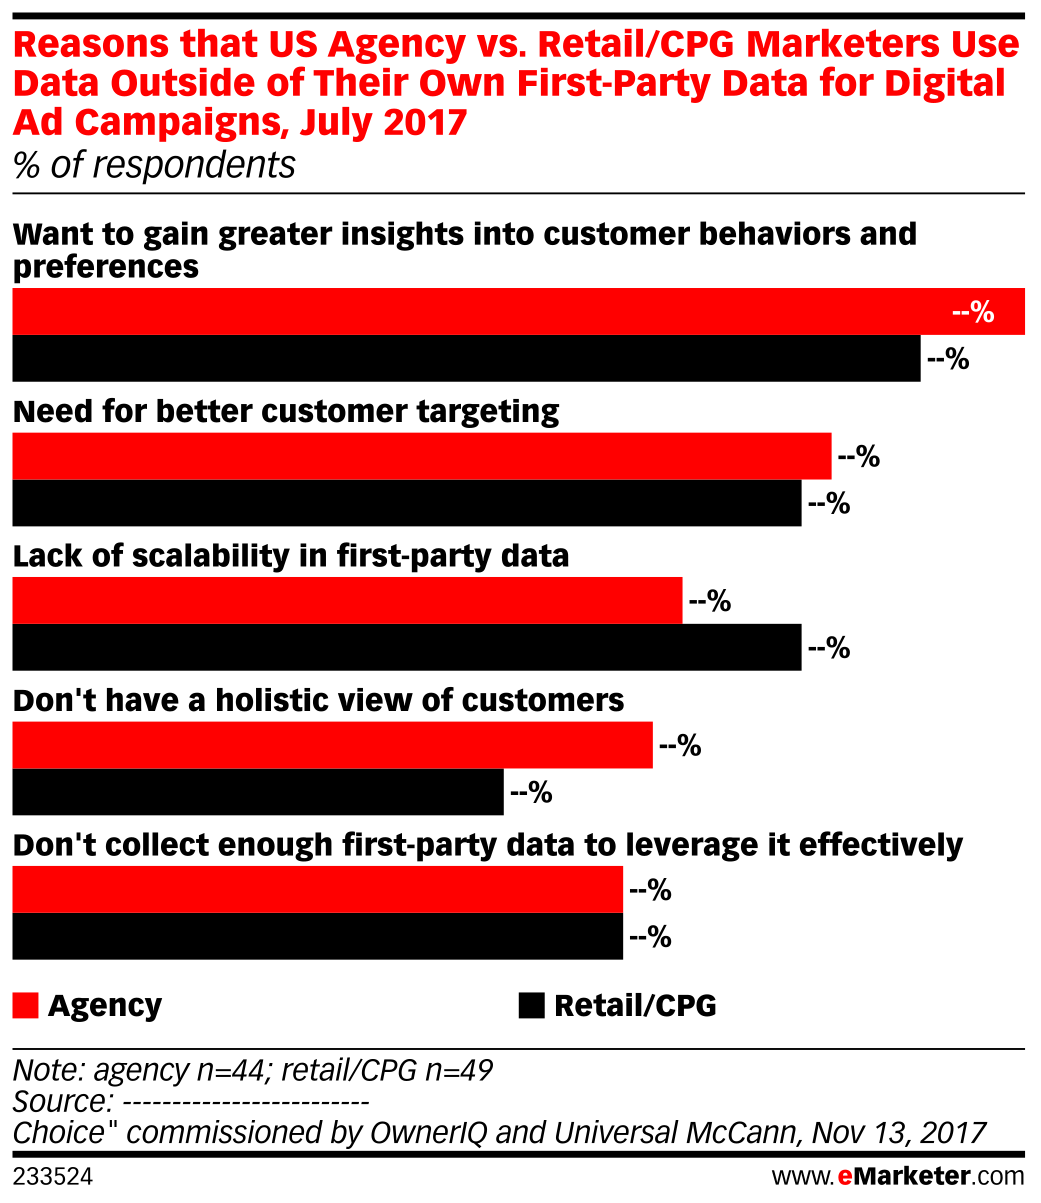 Reasons that US Agency vs. Retail/CPG Marketers Use Data Outside of Their Own First-Party Data for Digital Ad Campaigns, July 2017 (% of respondents)